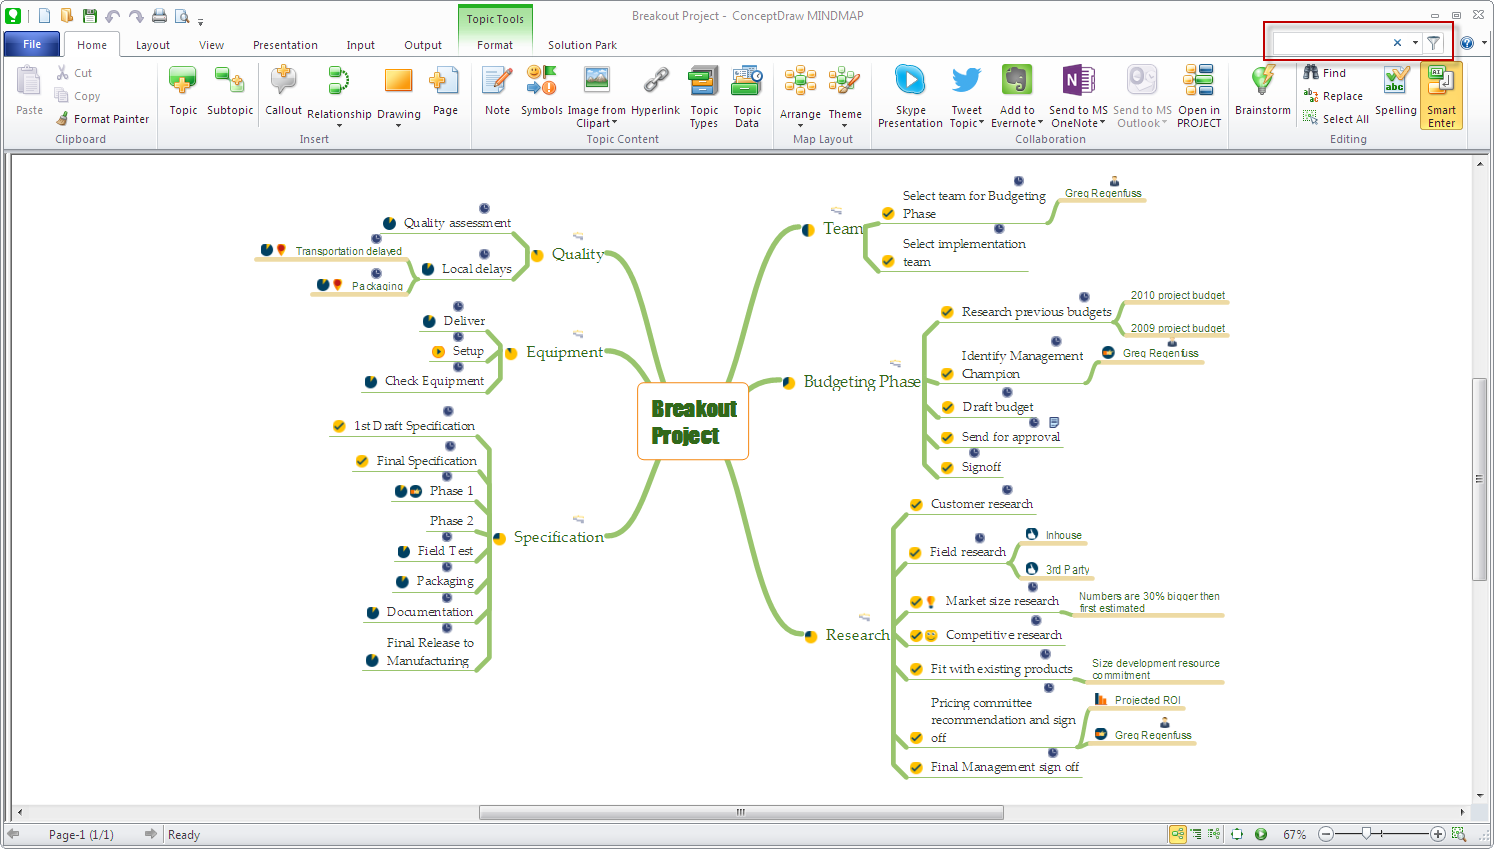 conceptdraw-mindmap-search-tool